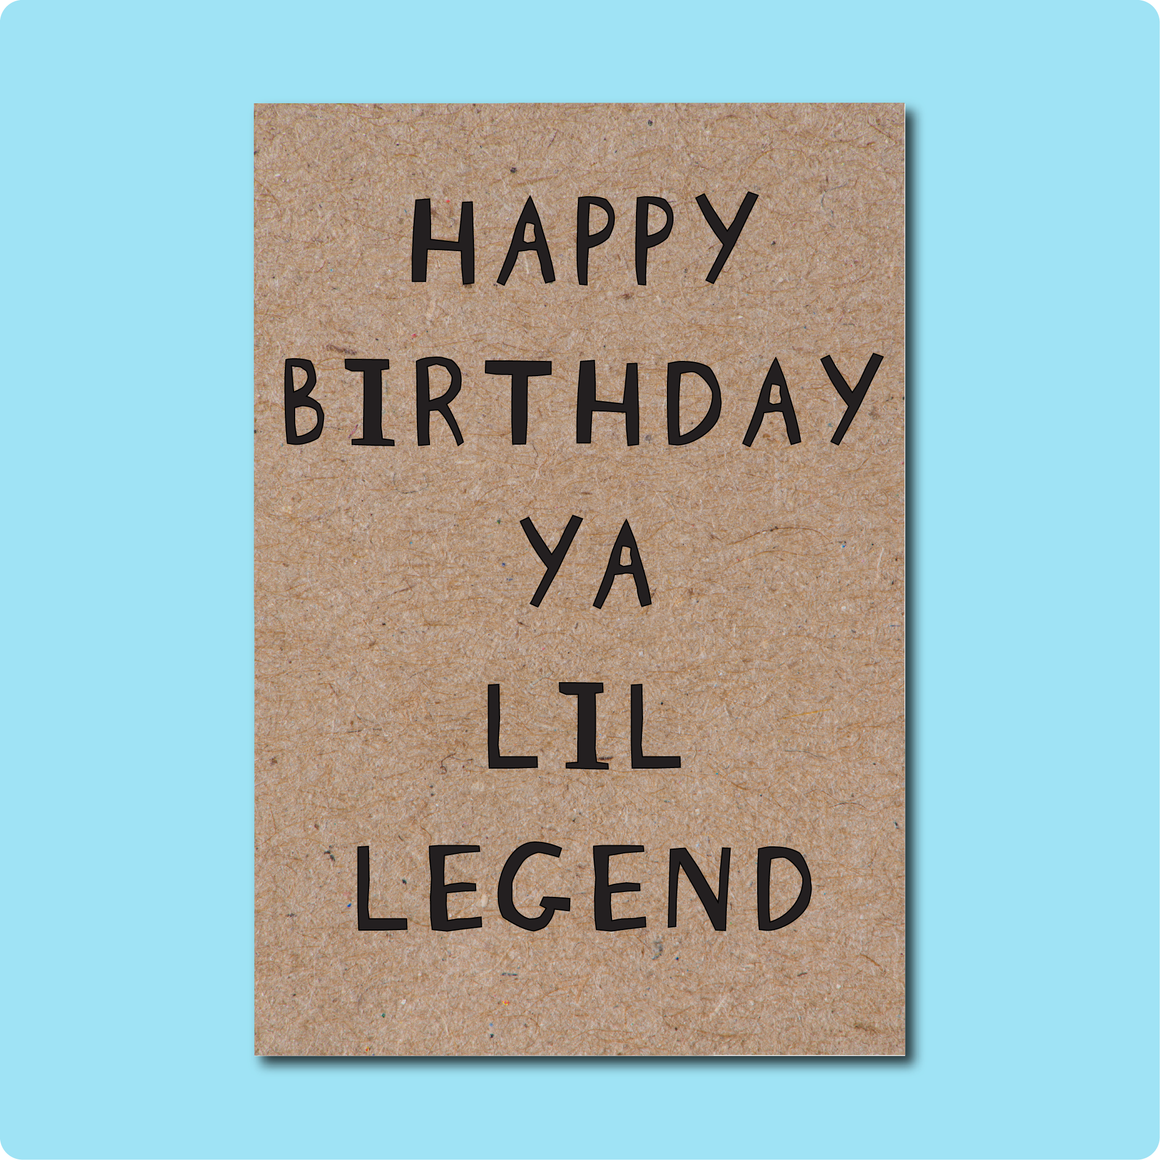 Happy Birthday Ya Lil Legend Greeting Card. For all the legends in your life. Text in black block letters on Kraft Brown paper.  Made in Brisbane, Australia using 100% Australian Recycled Paper.